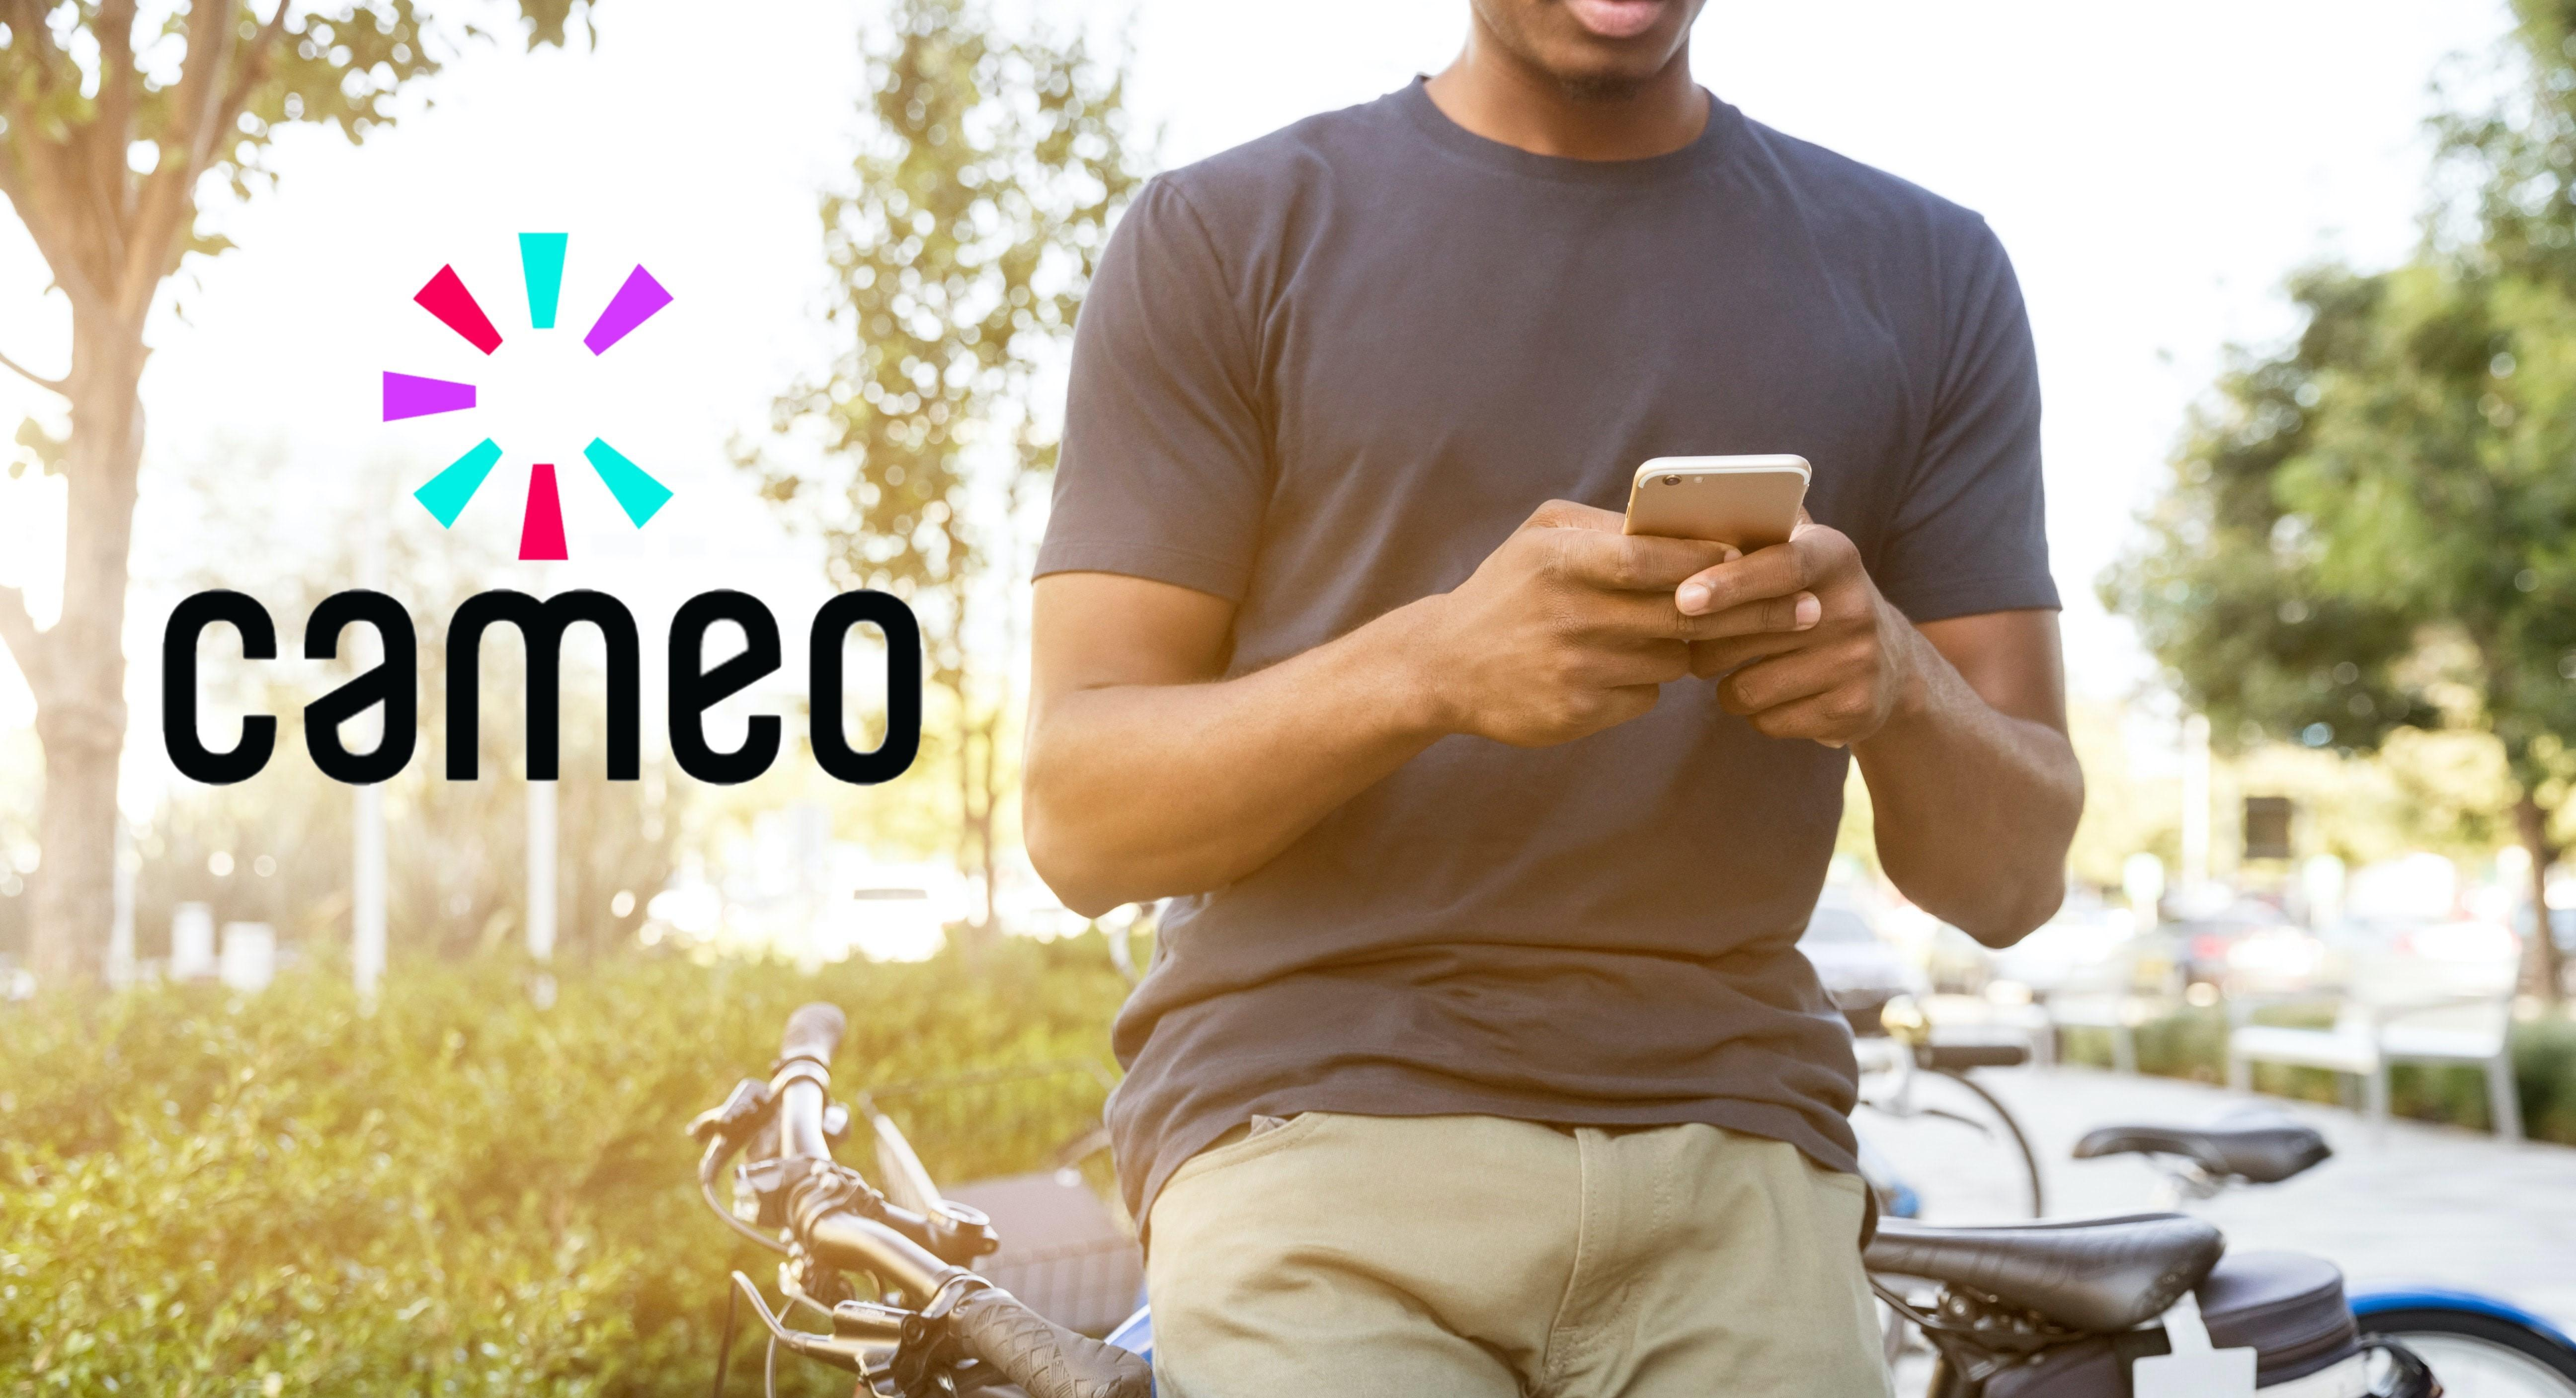 Cameo logo over guy using phone